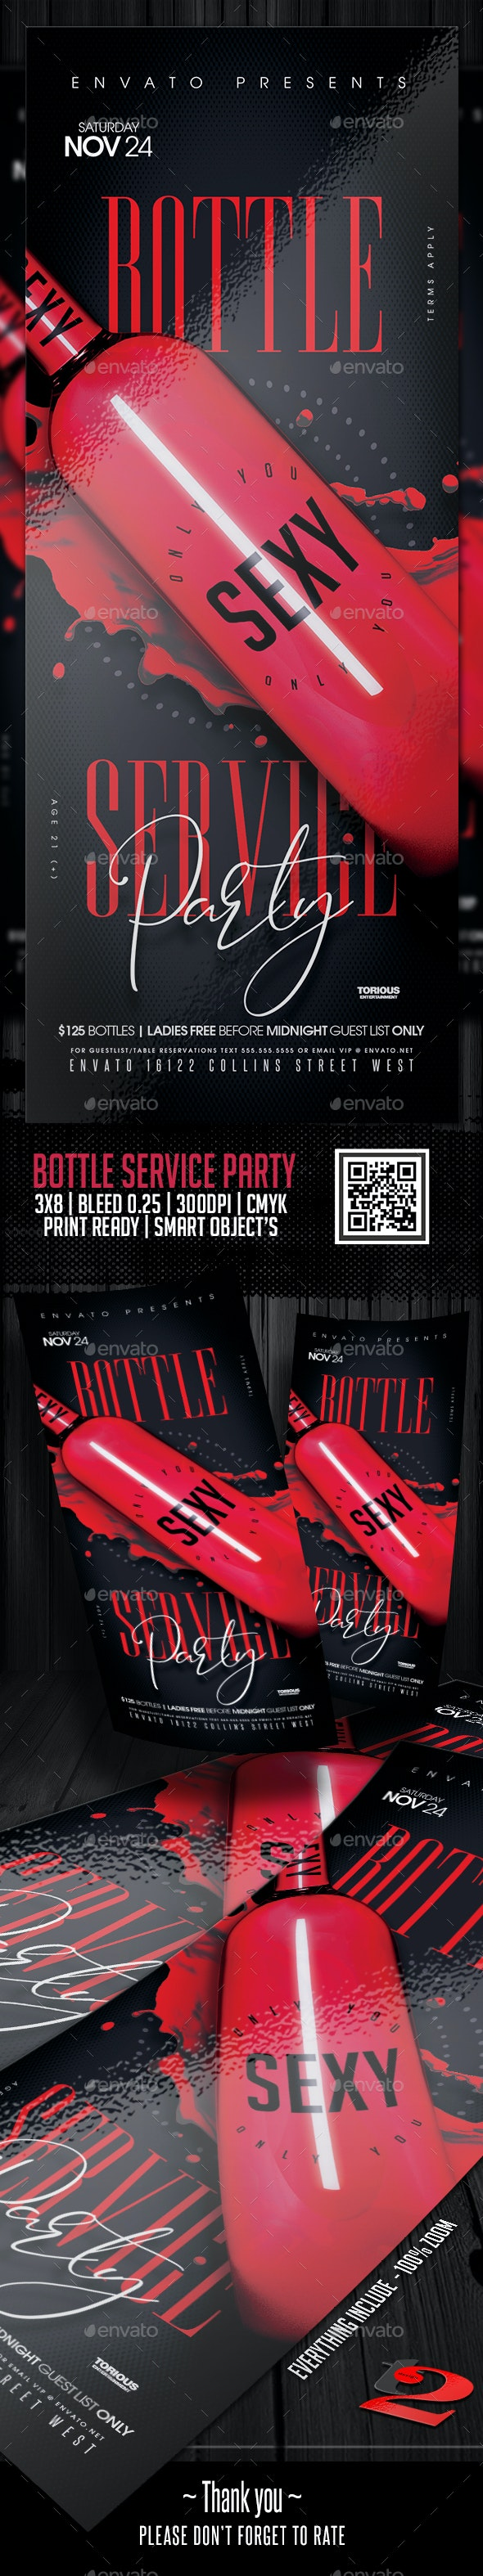 Bottle Service Party Flyer Template - Clubs & Parties Events